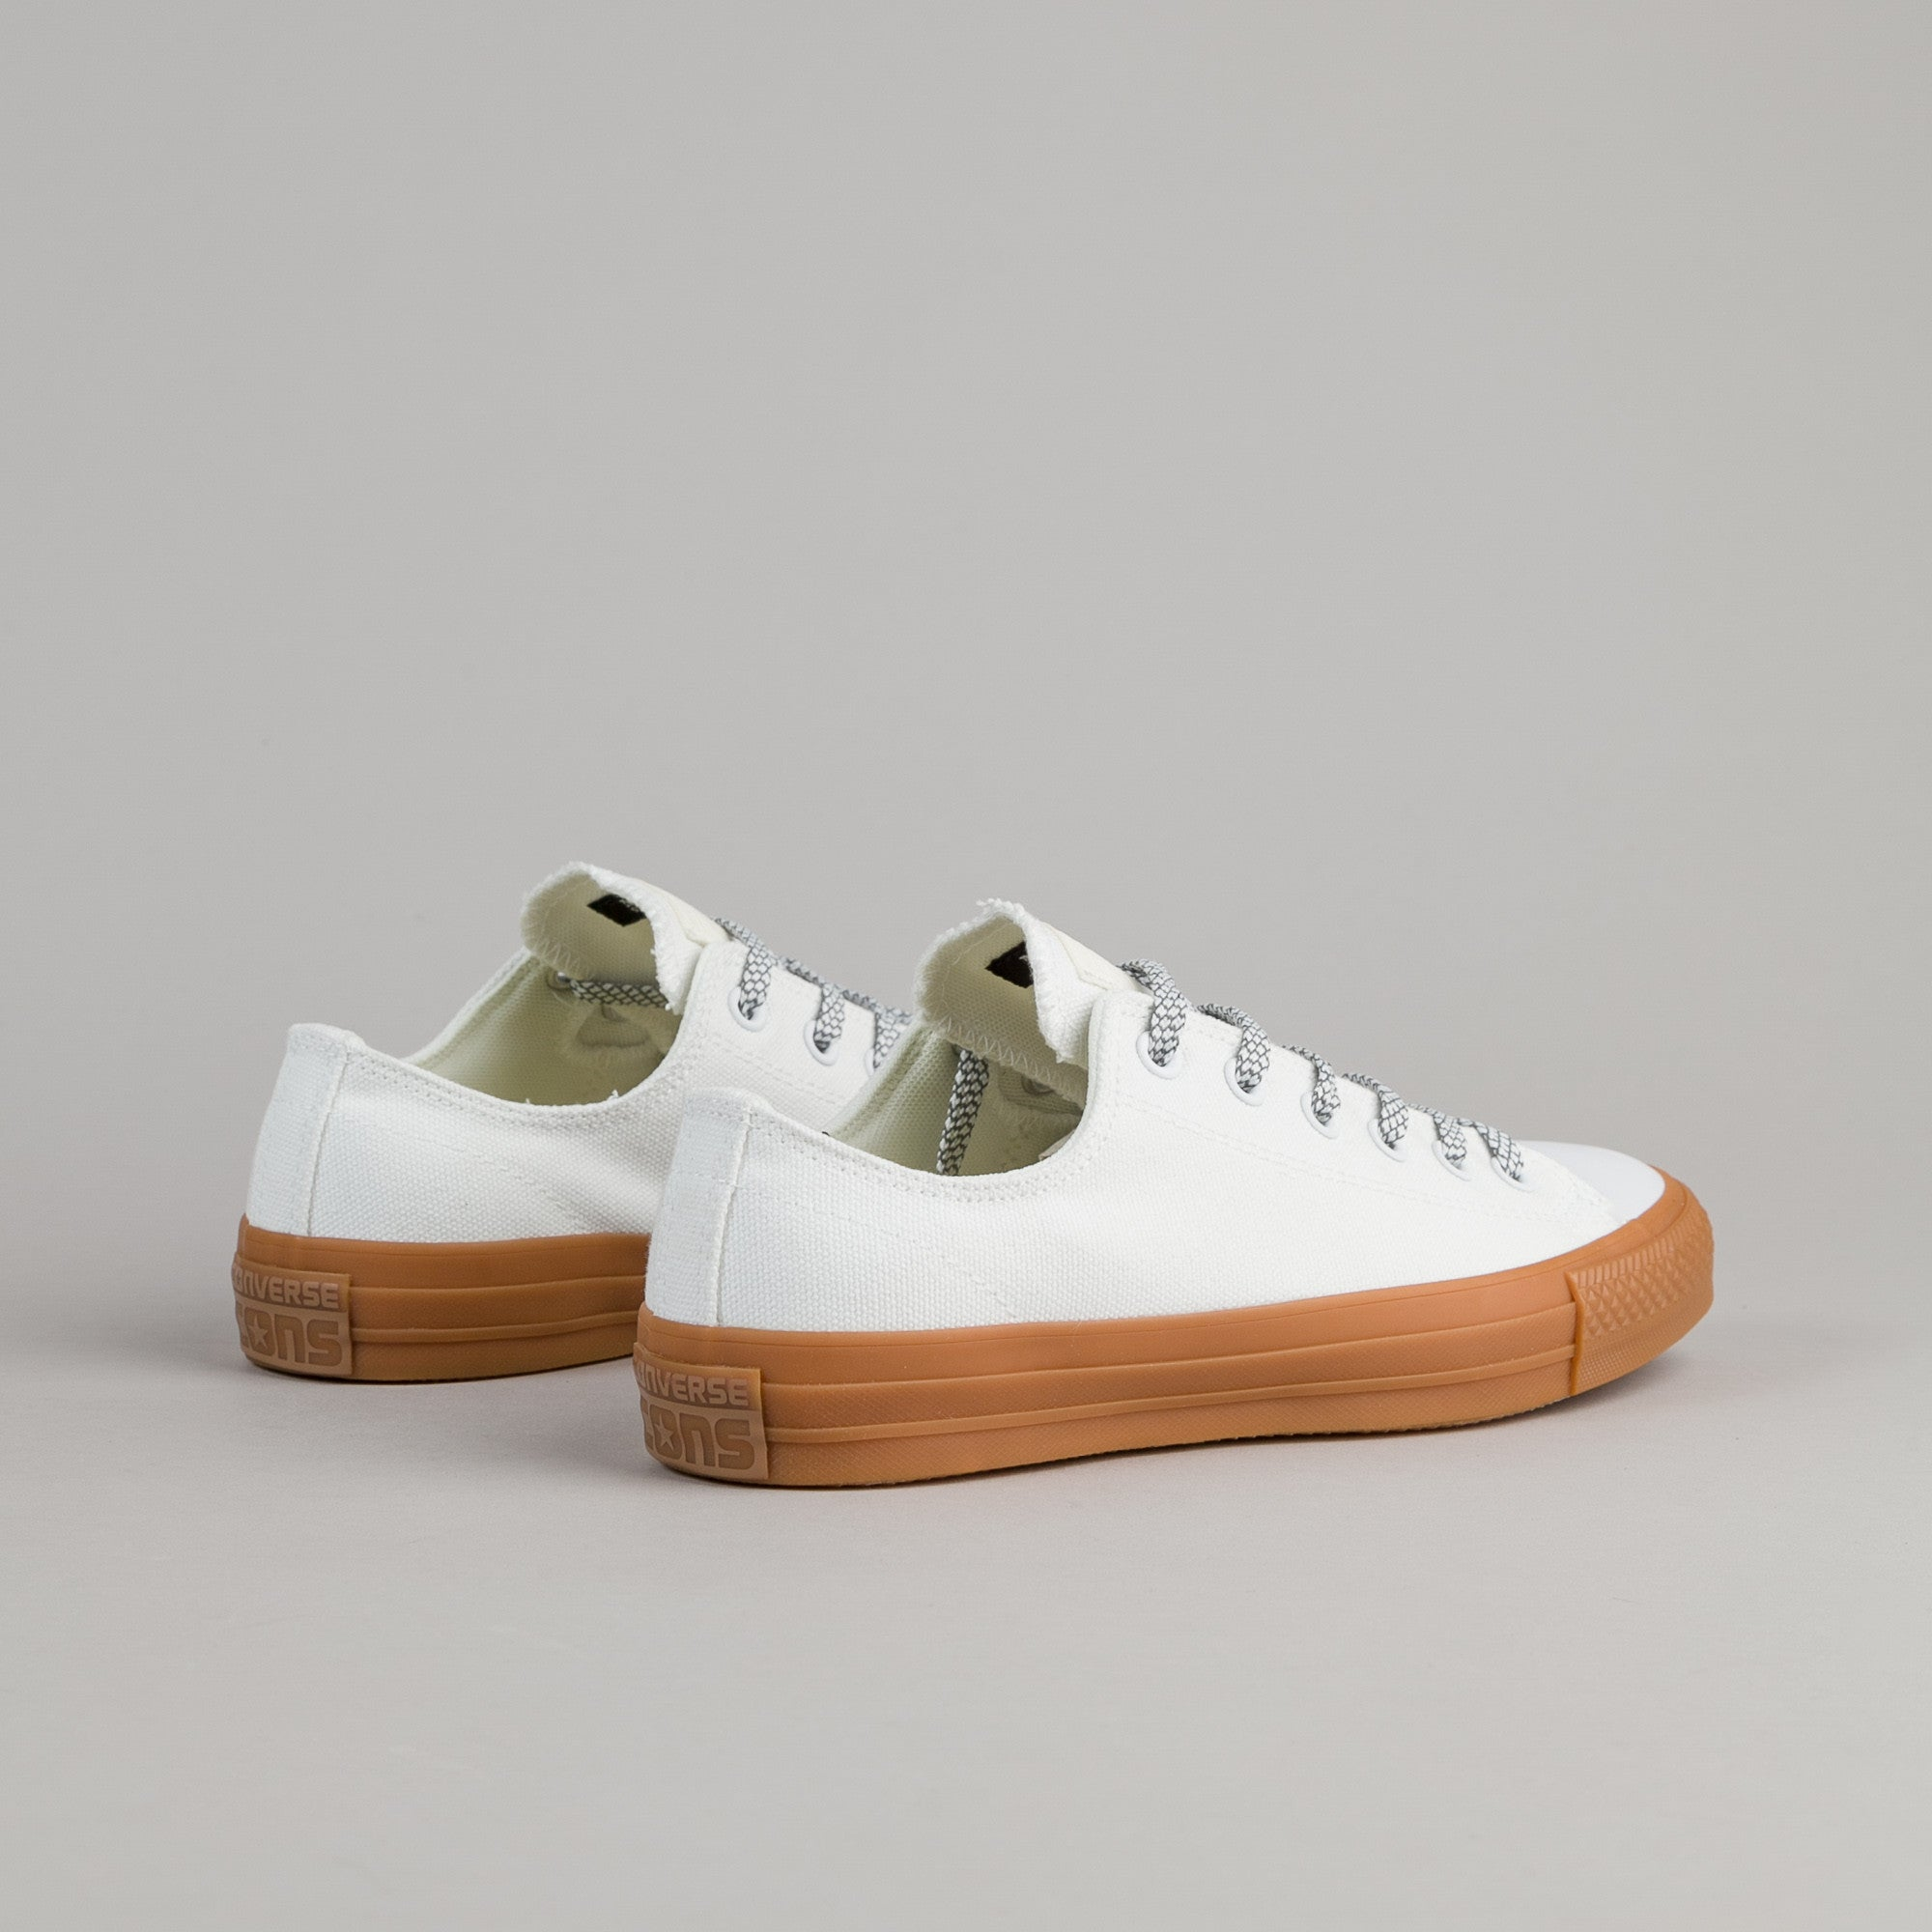 Converse CTAS Pro Shield Canvas OX Shoes - White / Egret